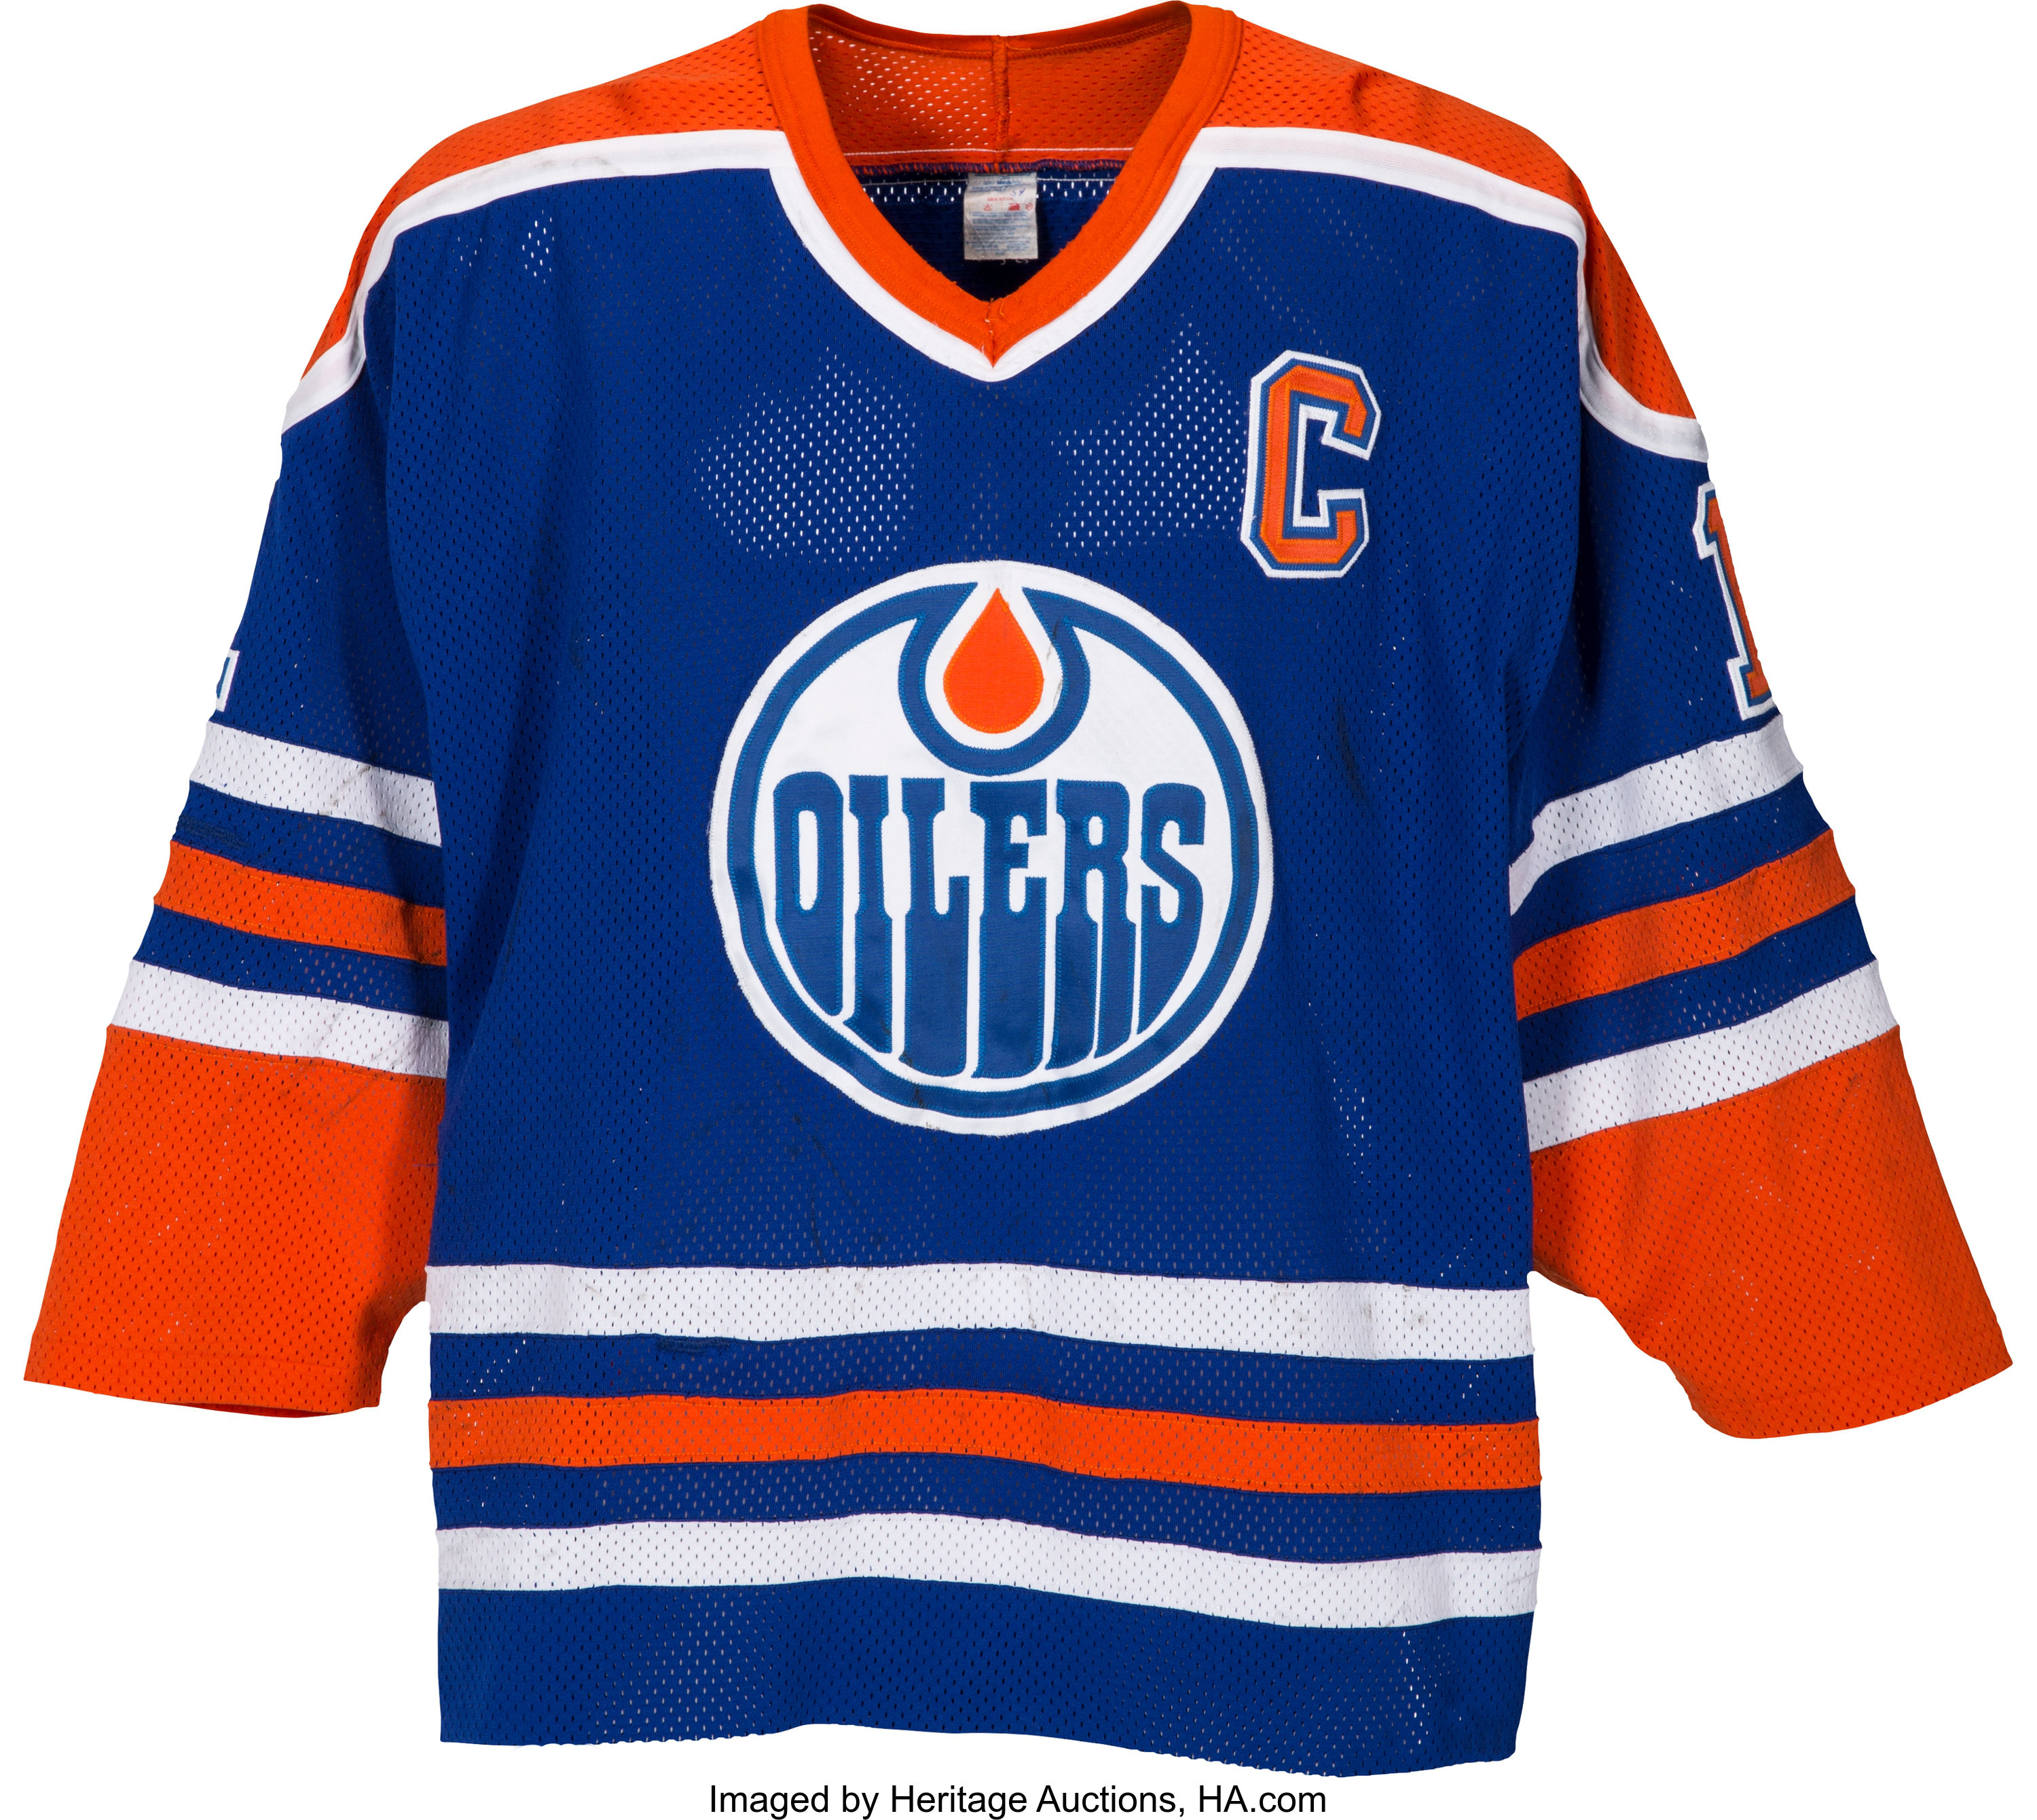 reputable site d4b6c 7bdc0 1989-90 Mark Messier Game Worn Edmonton Oilers Jersey - With ...